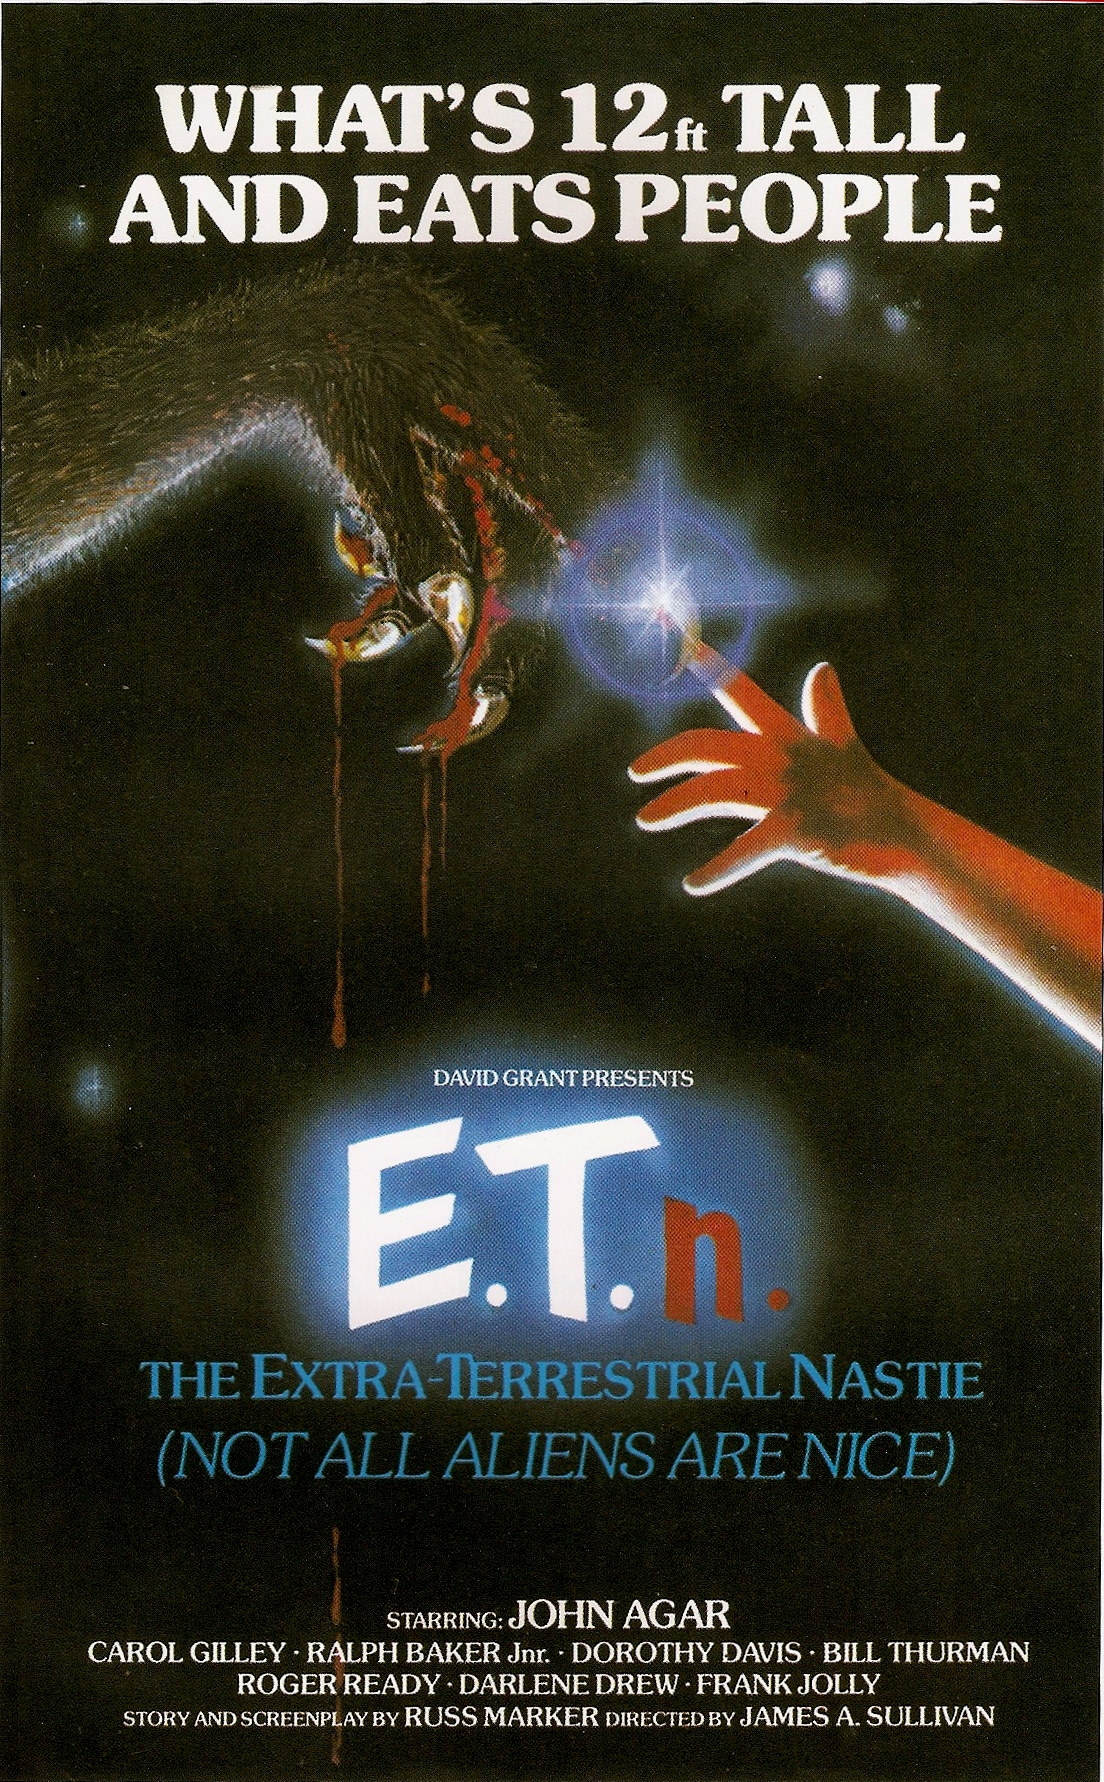 E.T.N.: The Extraterrestrial Nastie Film Poster